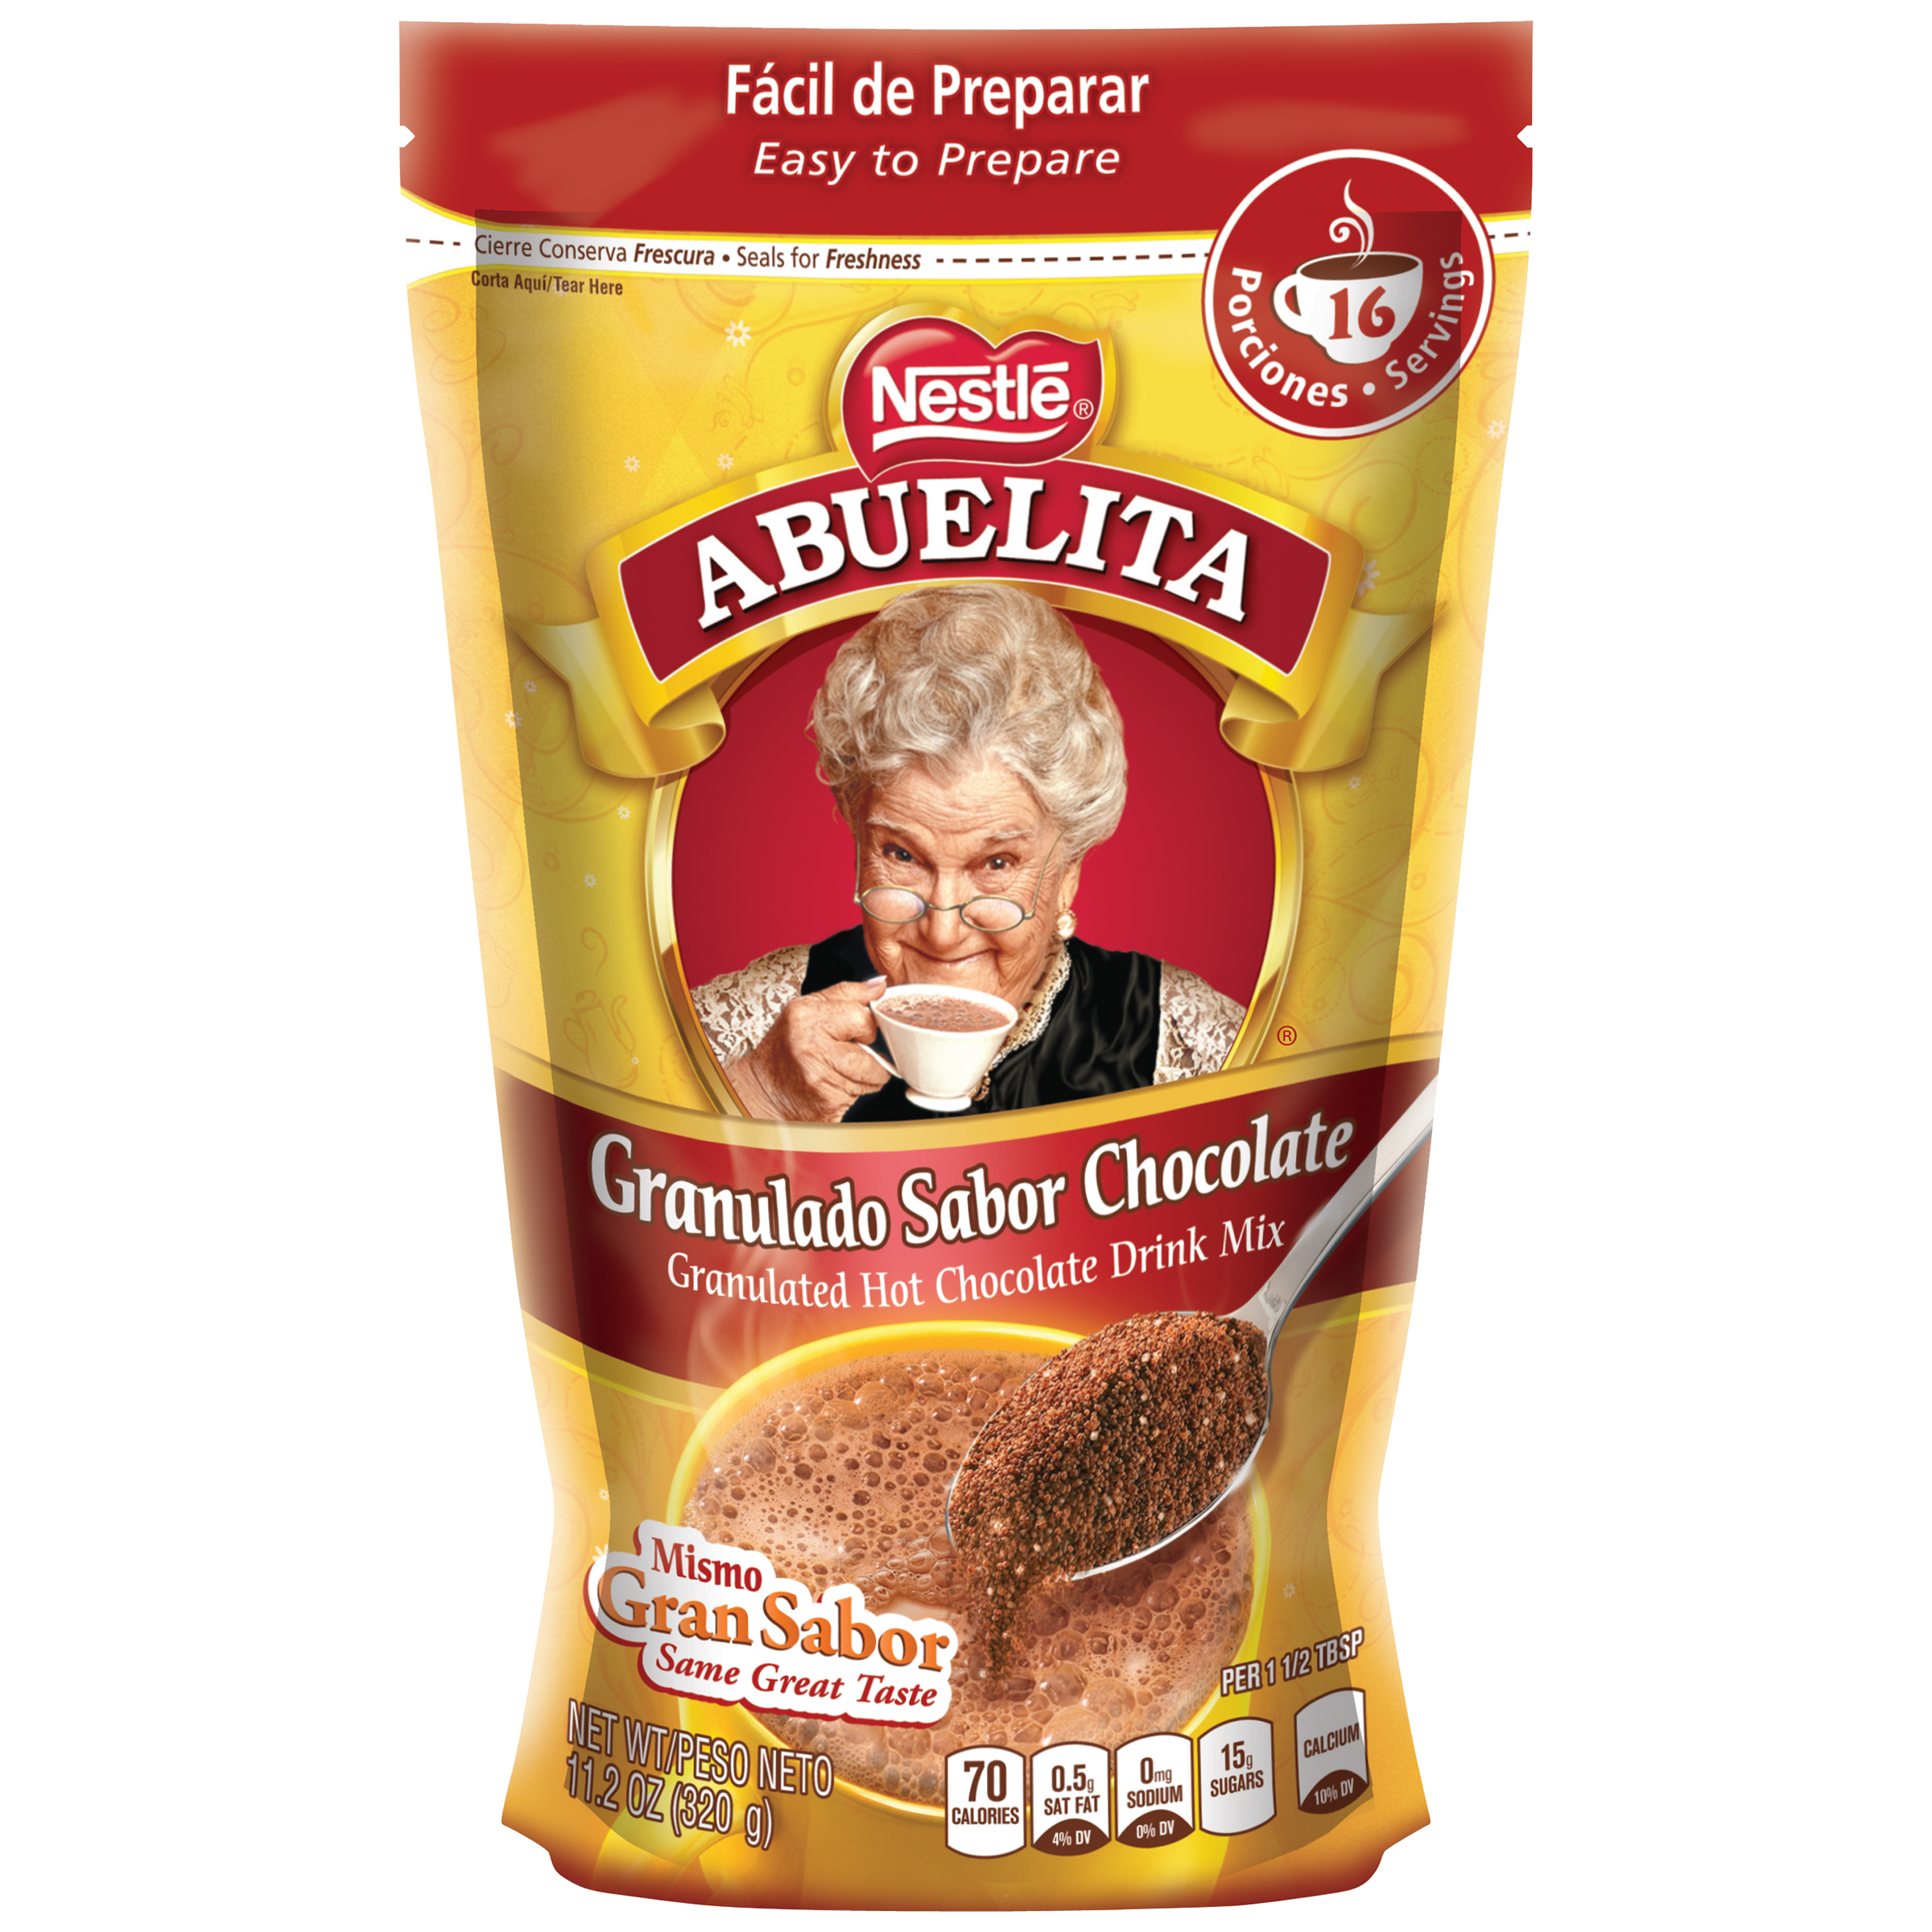 Nestle ABUELITA Granulated Hot Chocolate Drink Mix 11.2 oz. Bag